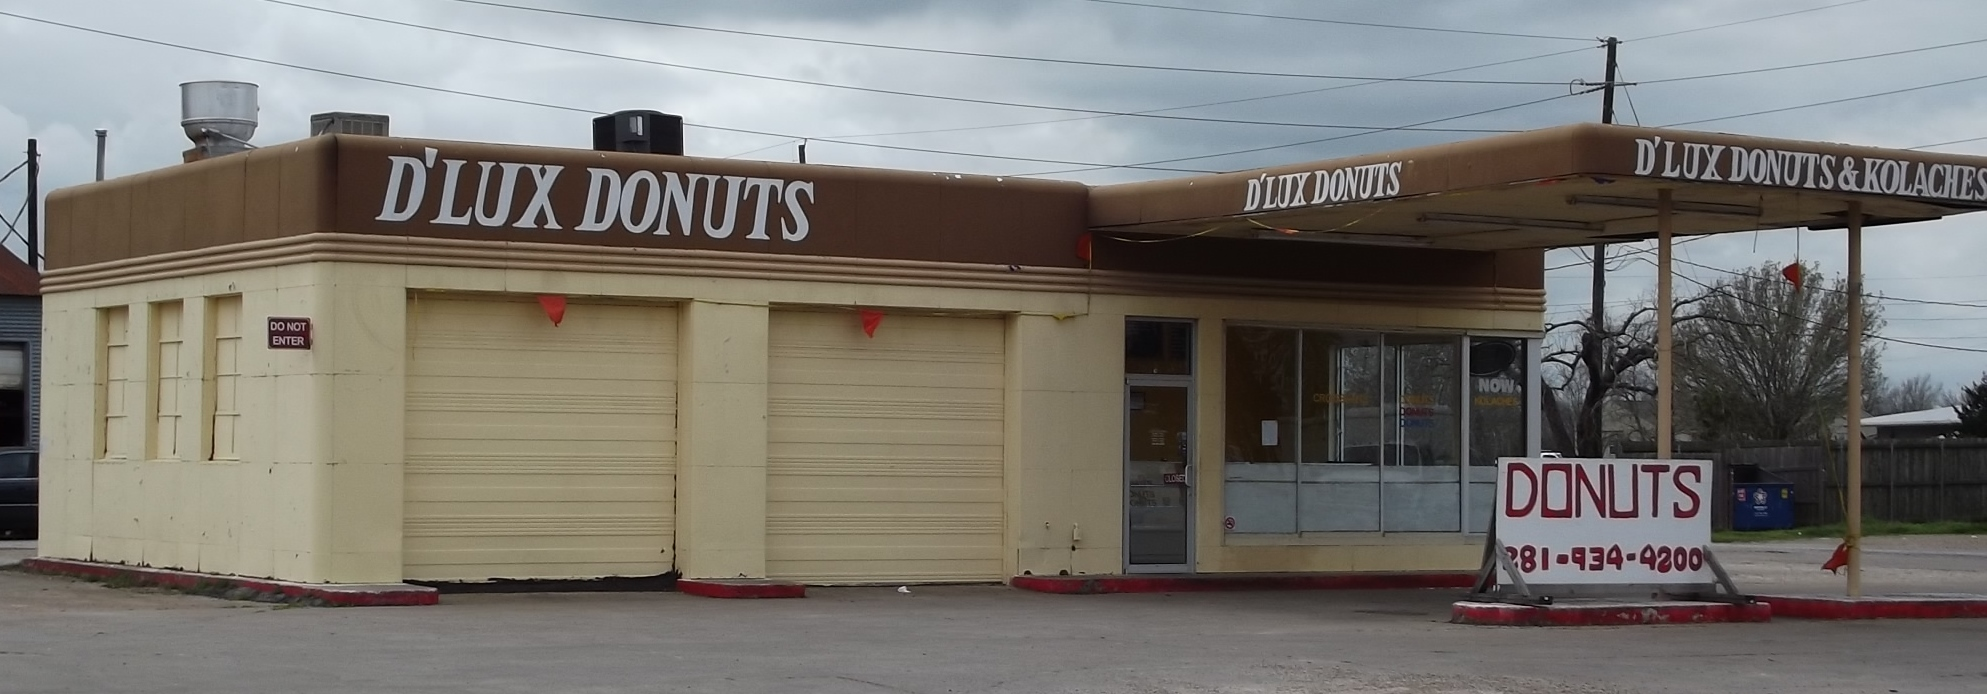 D'Lux Donuts